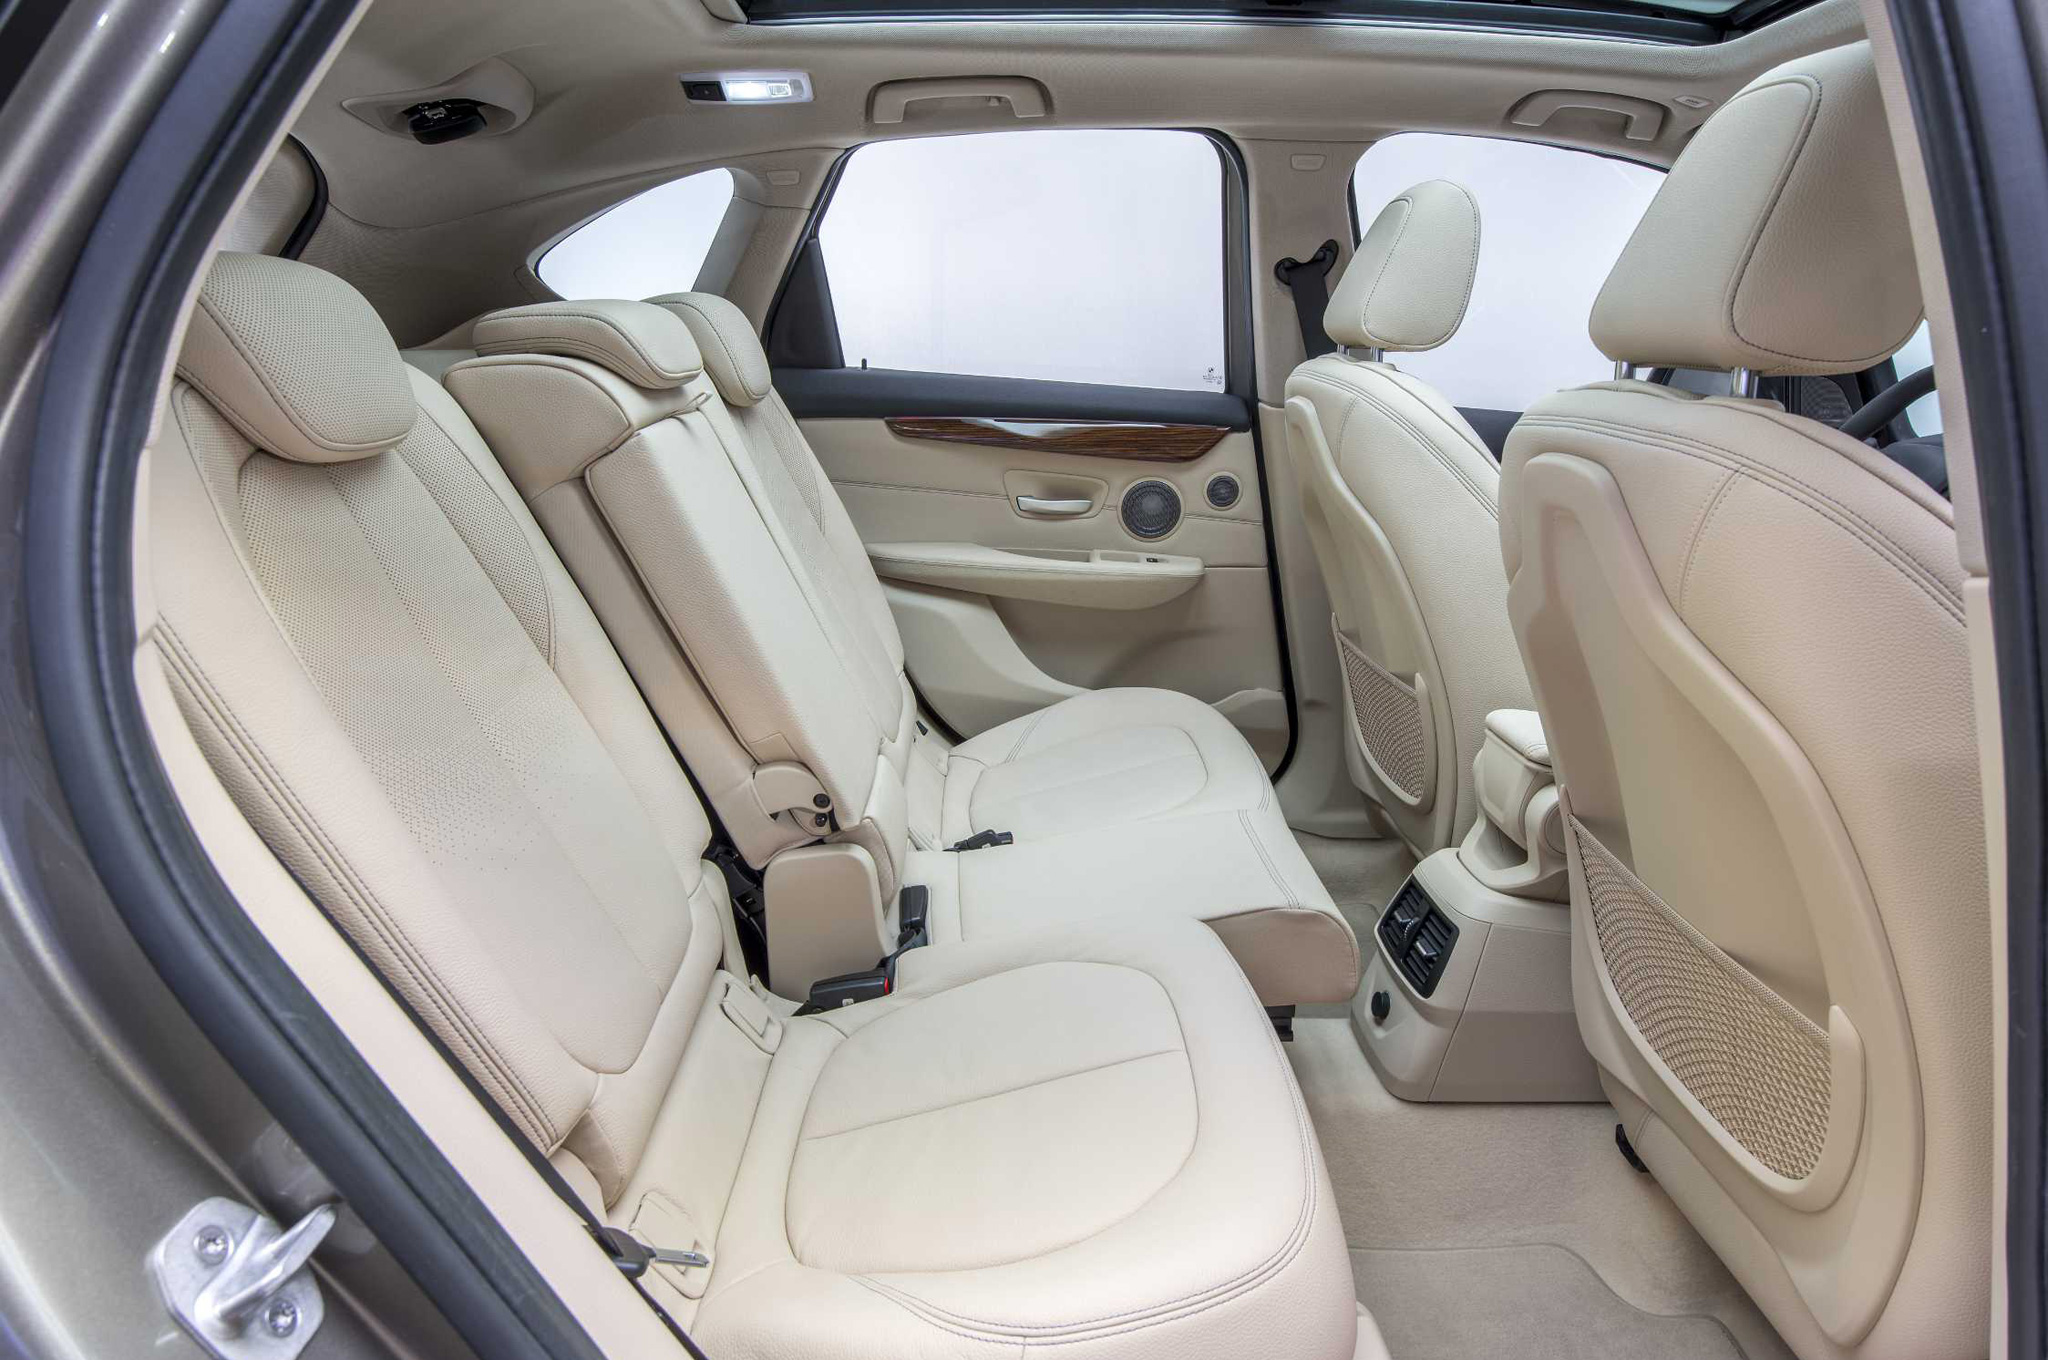 2015 BMW 2 Series Active Tourer 225i Rear Seats Interior